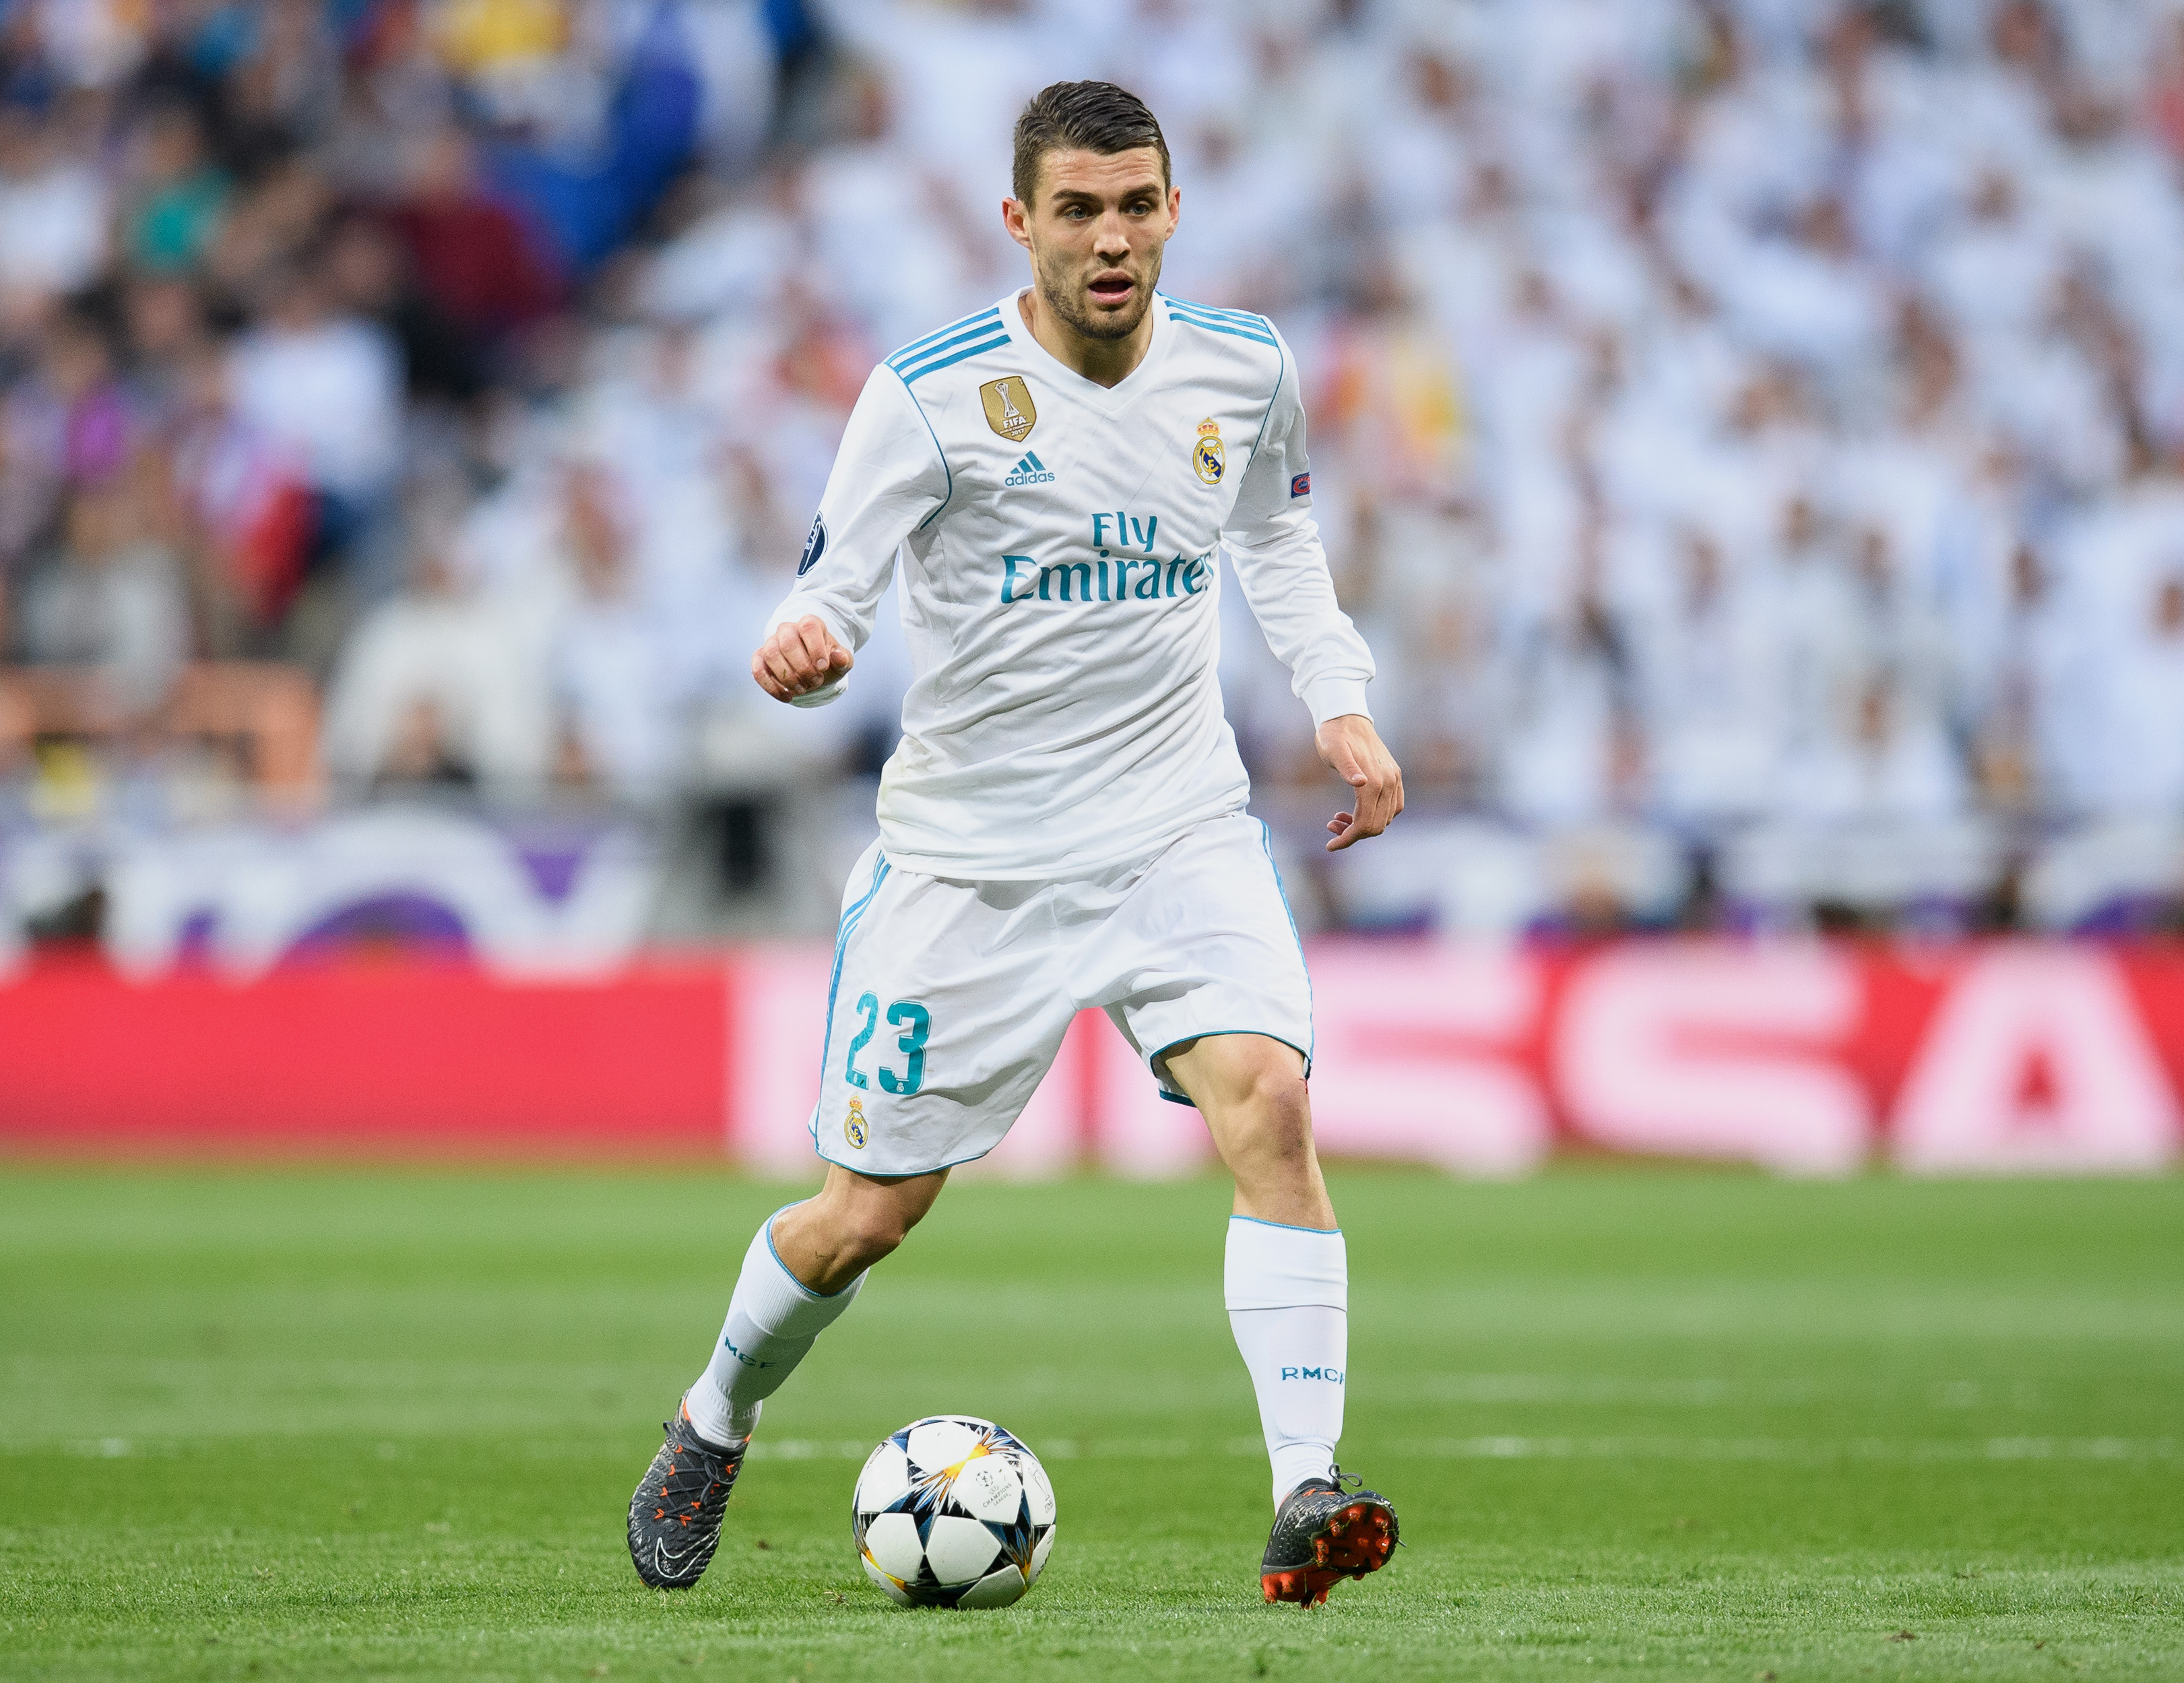 MADRID SPAIN- MAY 01 Mateo Kovacic of Real Madrid controls the ball during the UEFA Champions League Semi Final Second Leg match between Real Madrid and Bayern Muenchen at the Bernabeu